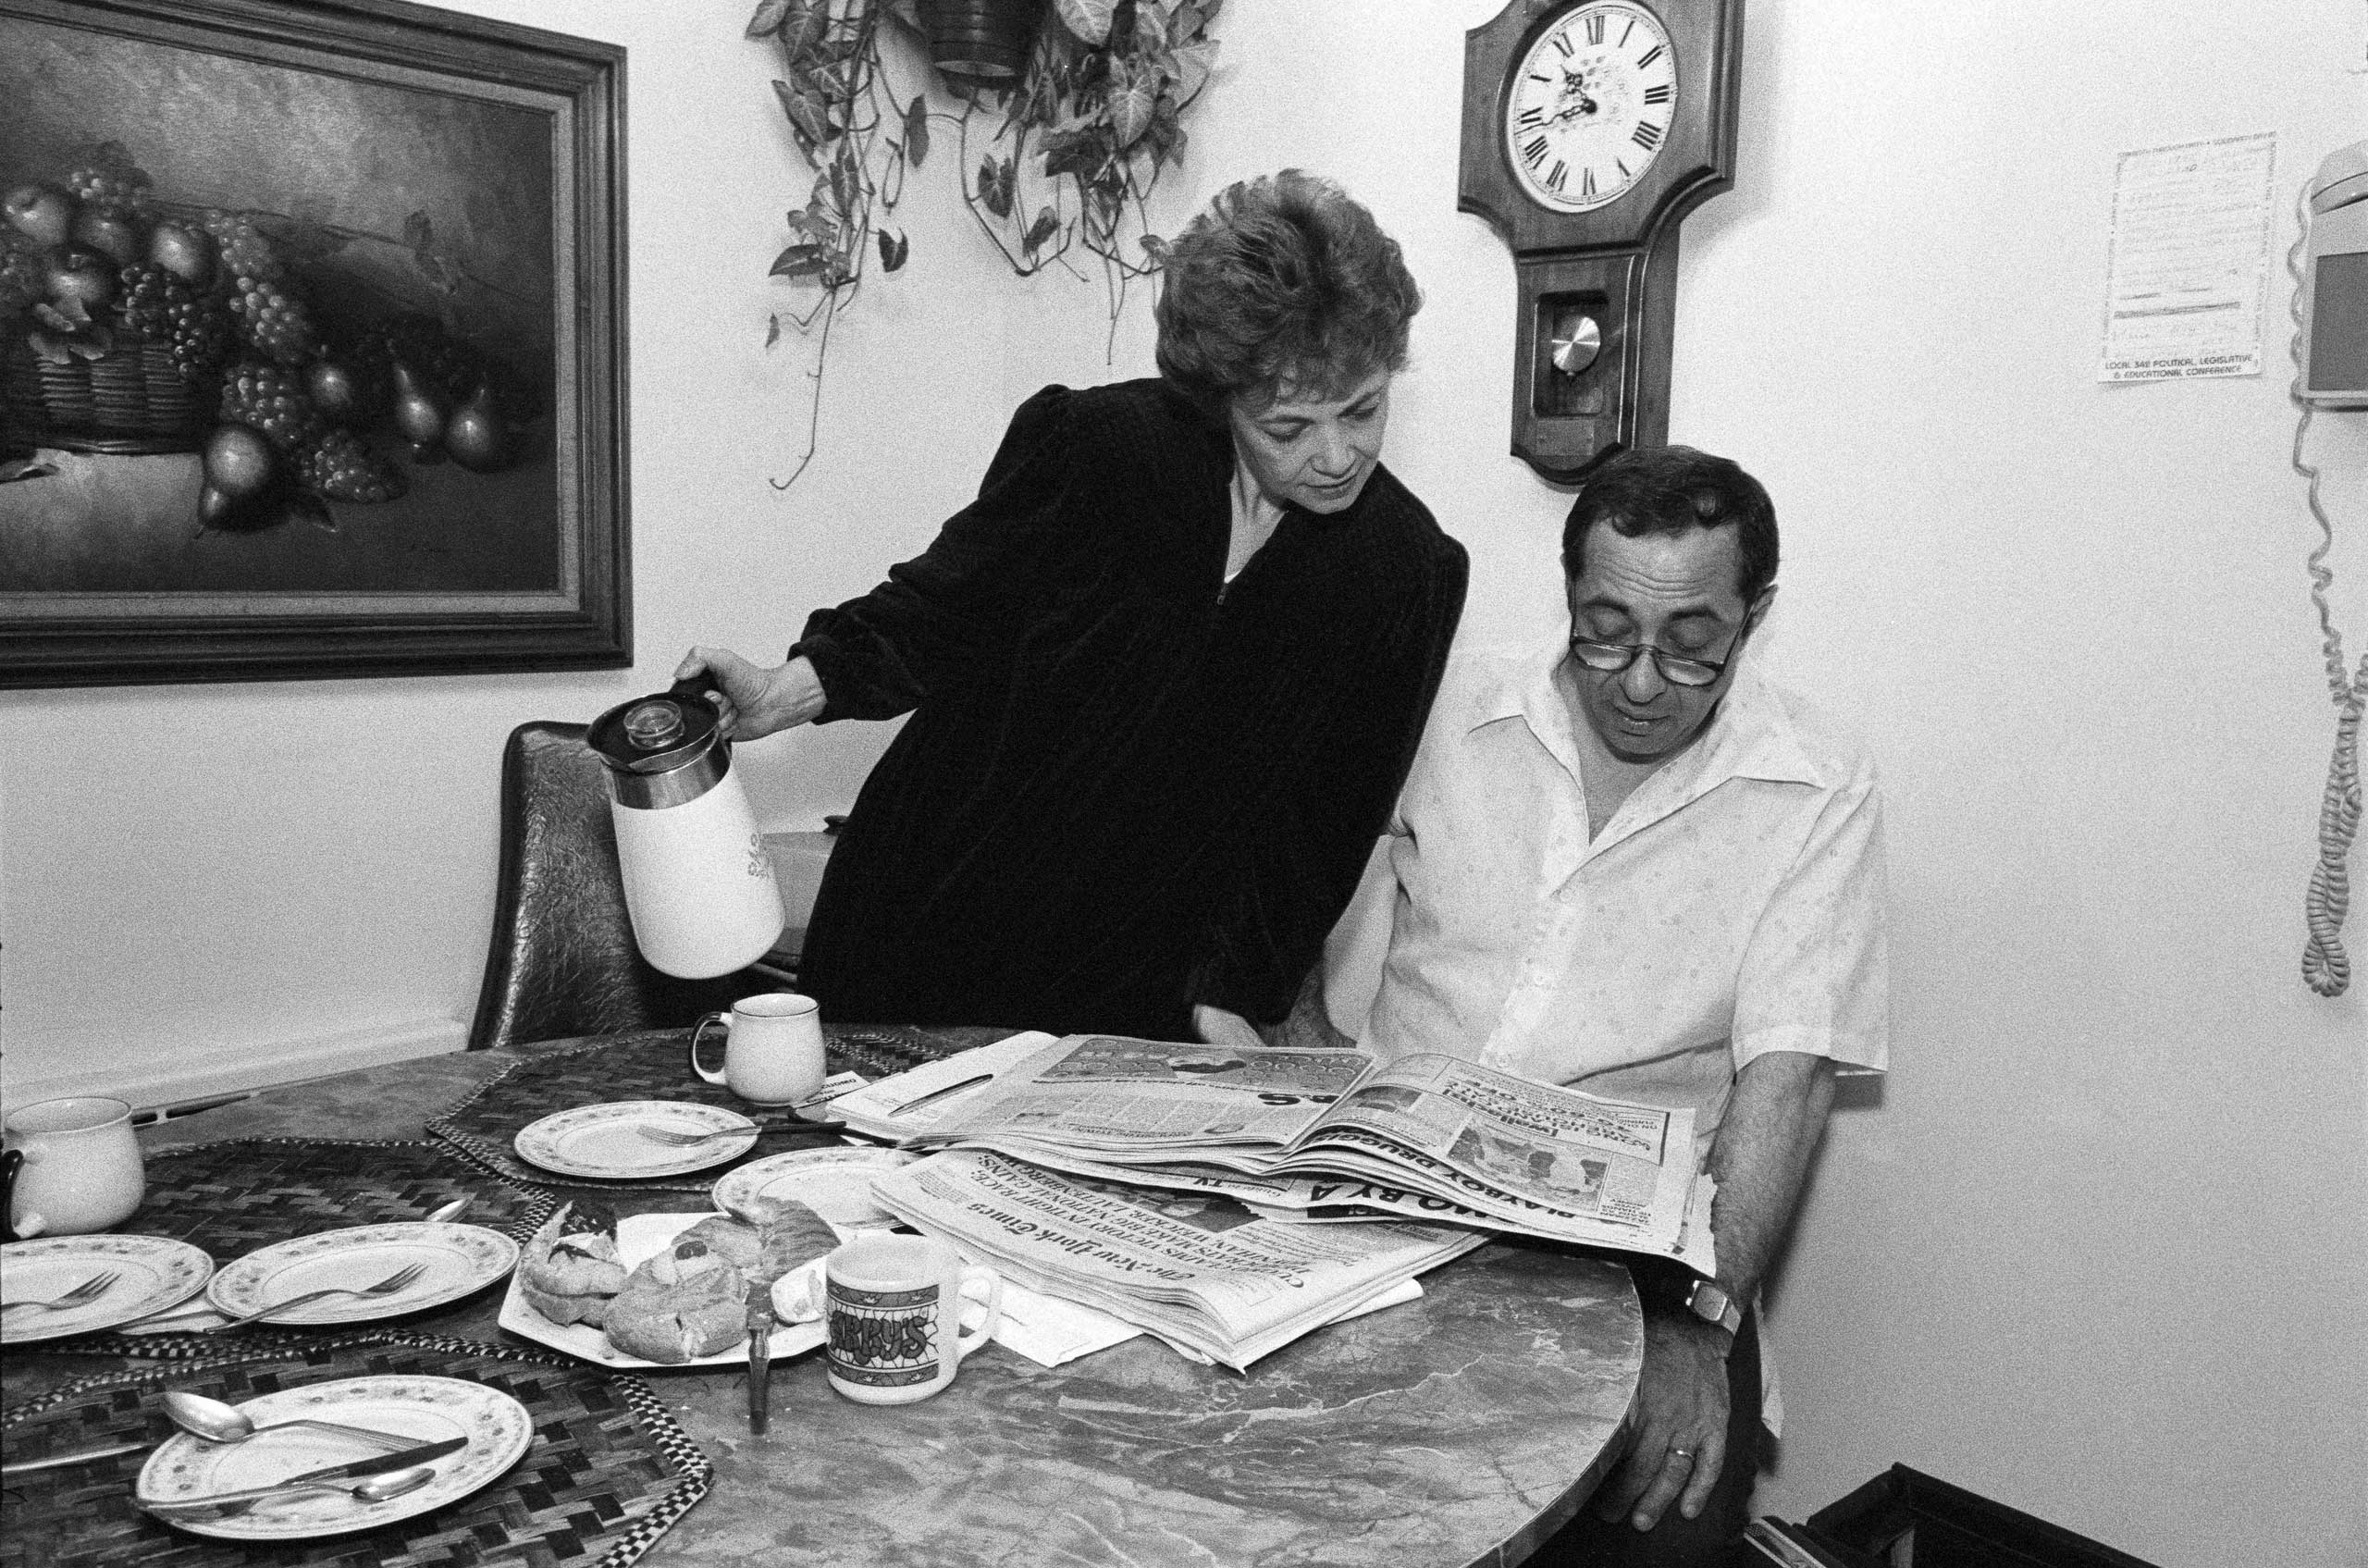 Governor-elect Mario Cuomo reads the morning papers with his wife, Matilda, at their home in the Queens borough of New York City on Nov. 3, 1982.